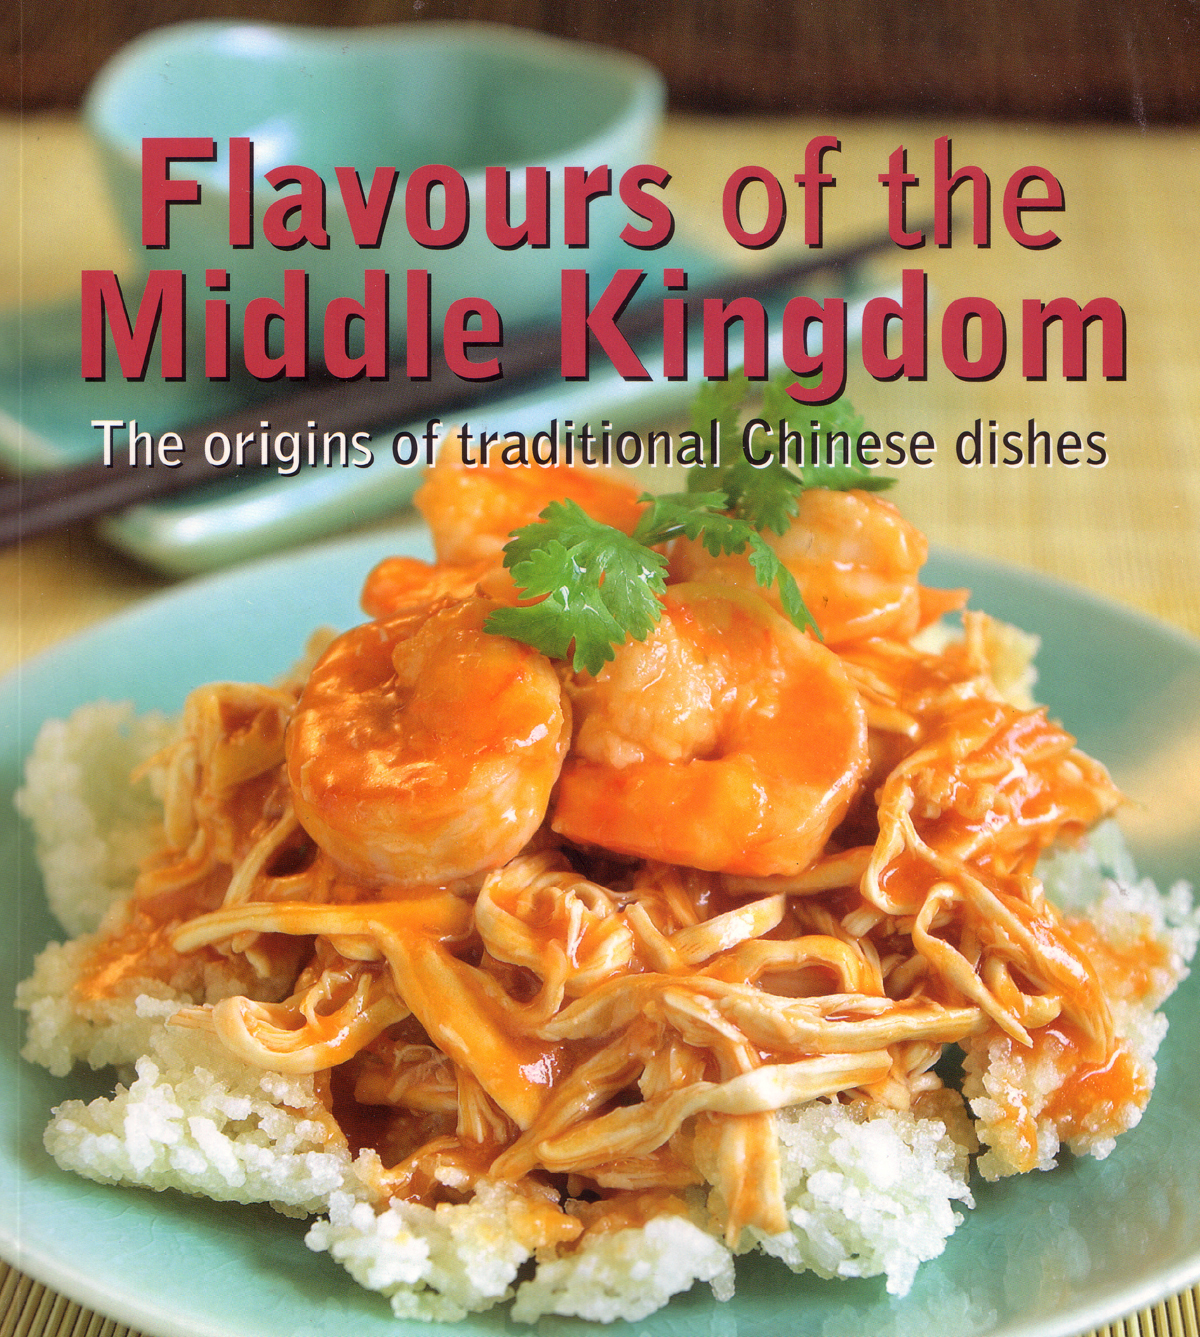 Flavours of the middle kingdom subtitled the origins of traditional chinese dishes virtually all recipes were taken with small name changes and minor forumfinder Gallery